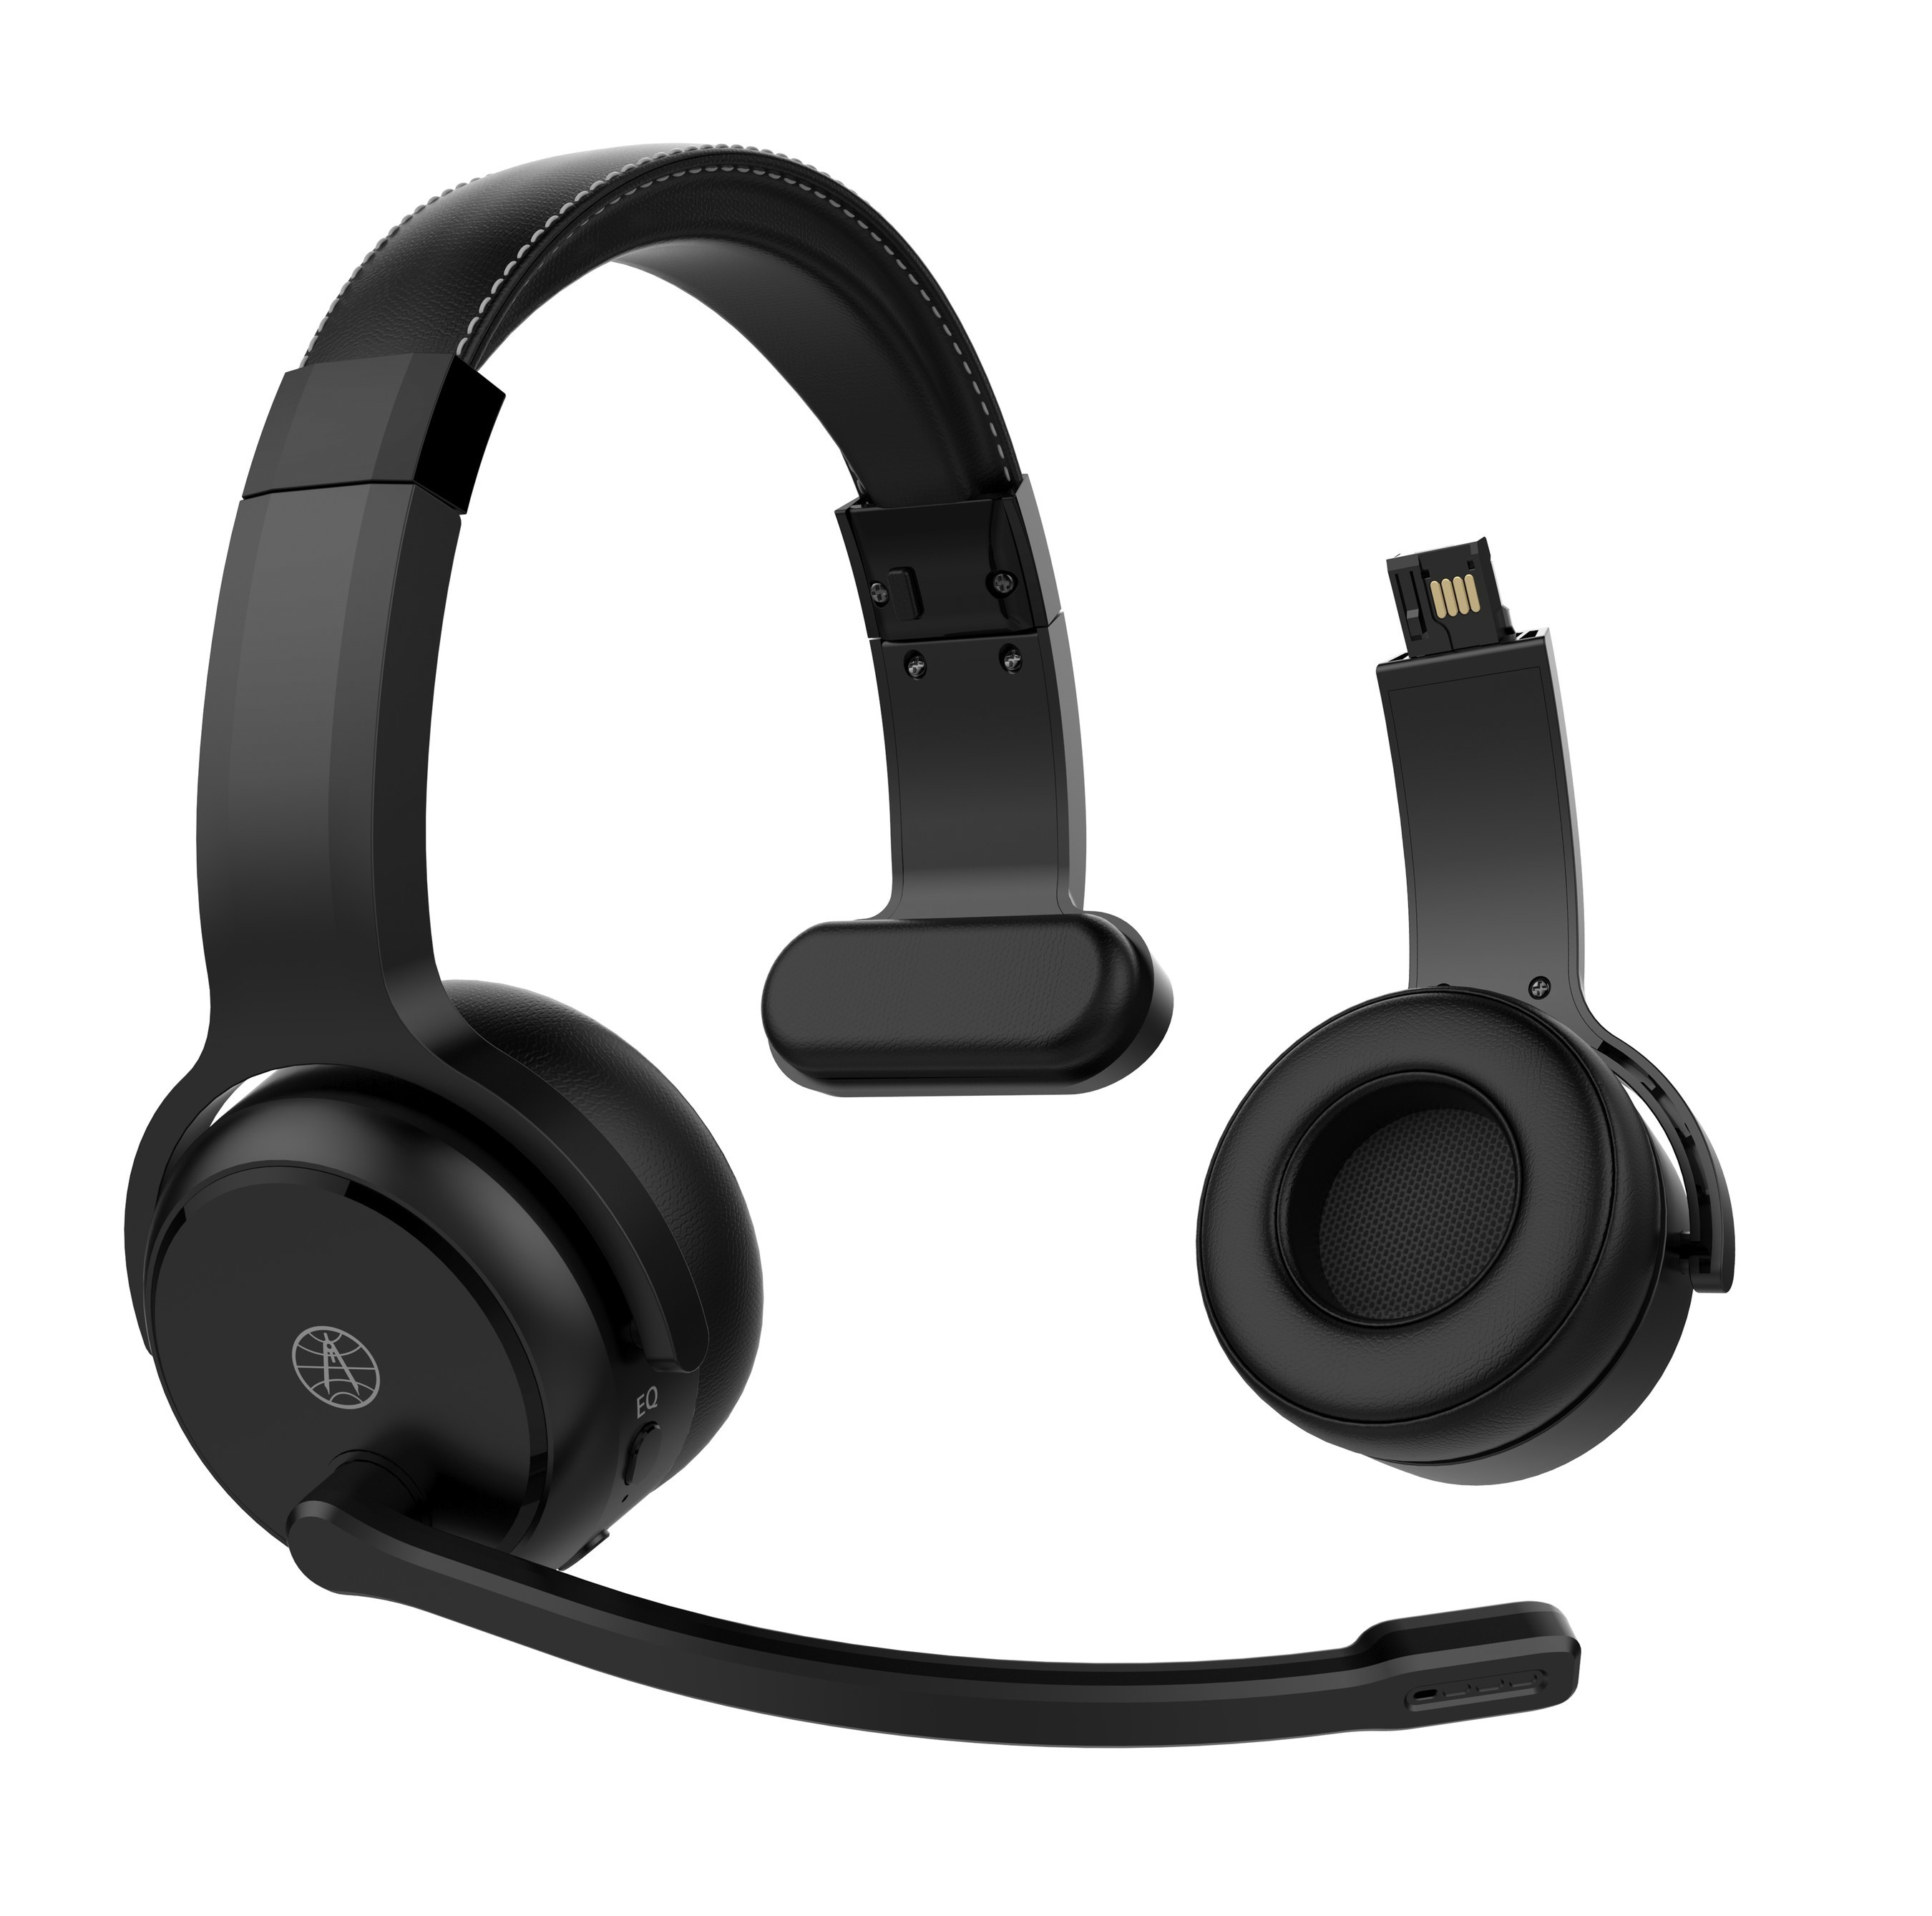 405f1ceb6fb Rand McNally Introduces Unique 2-in-1 Headset for Drivers